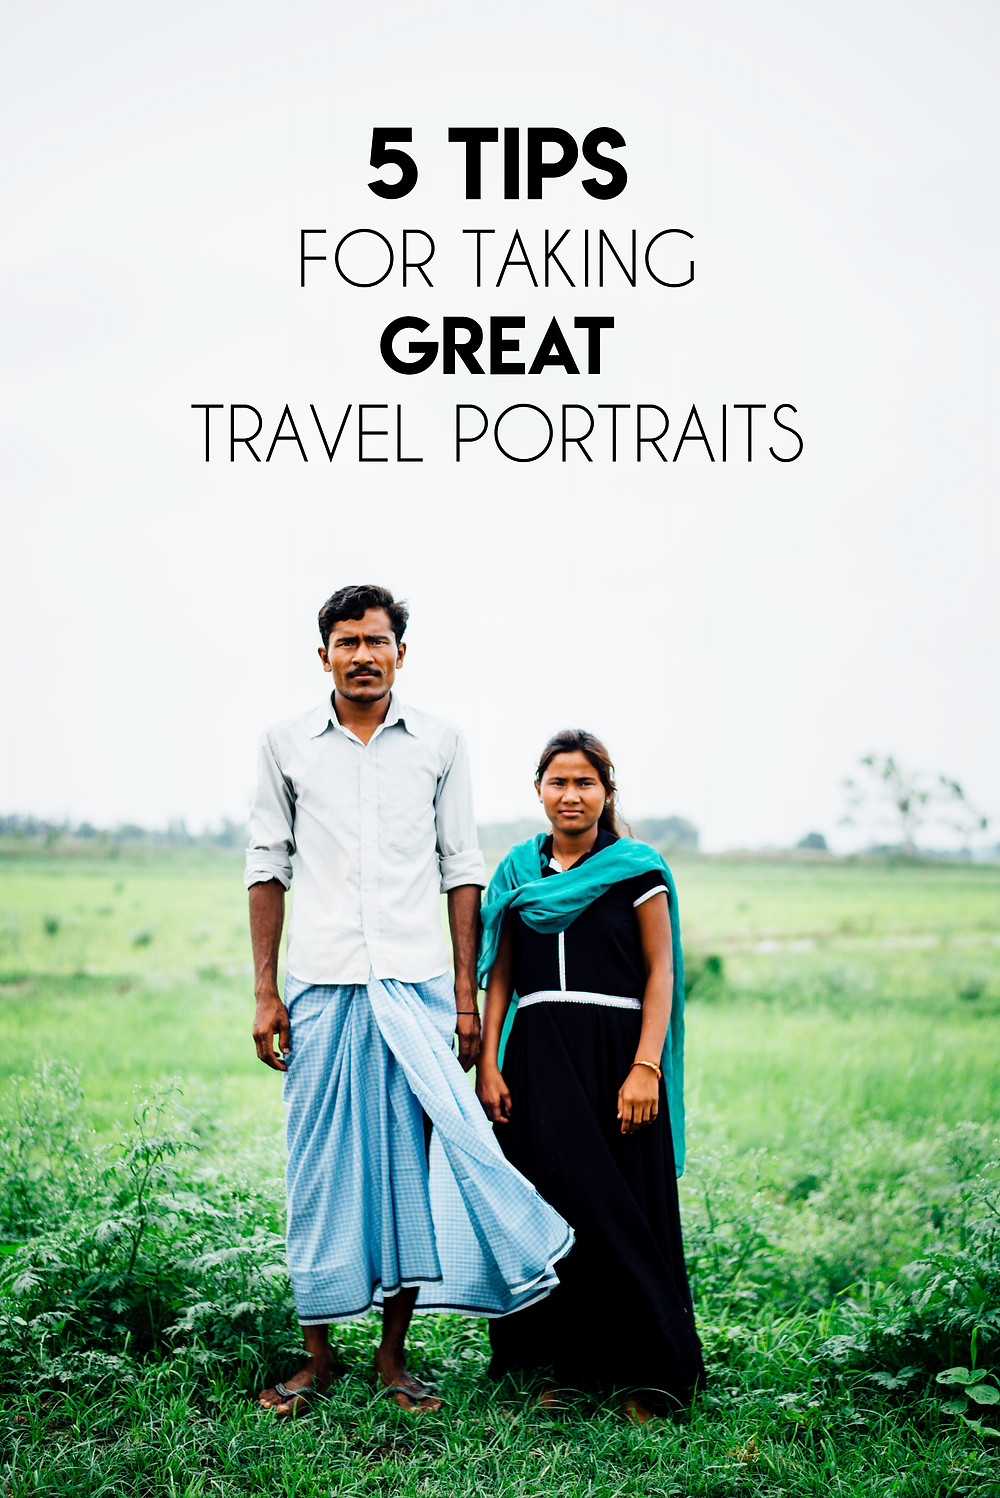 5 Tips For Taking Great Travel Portraits